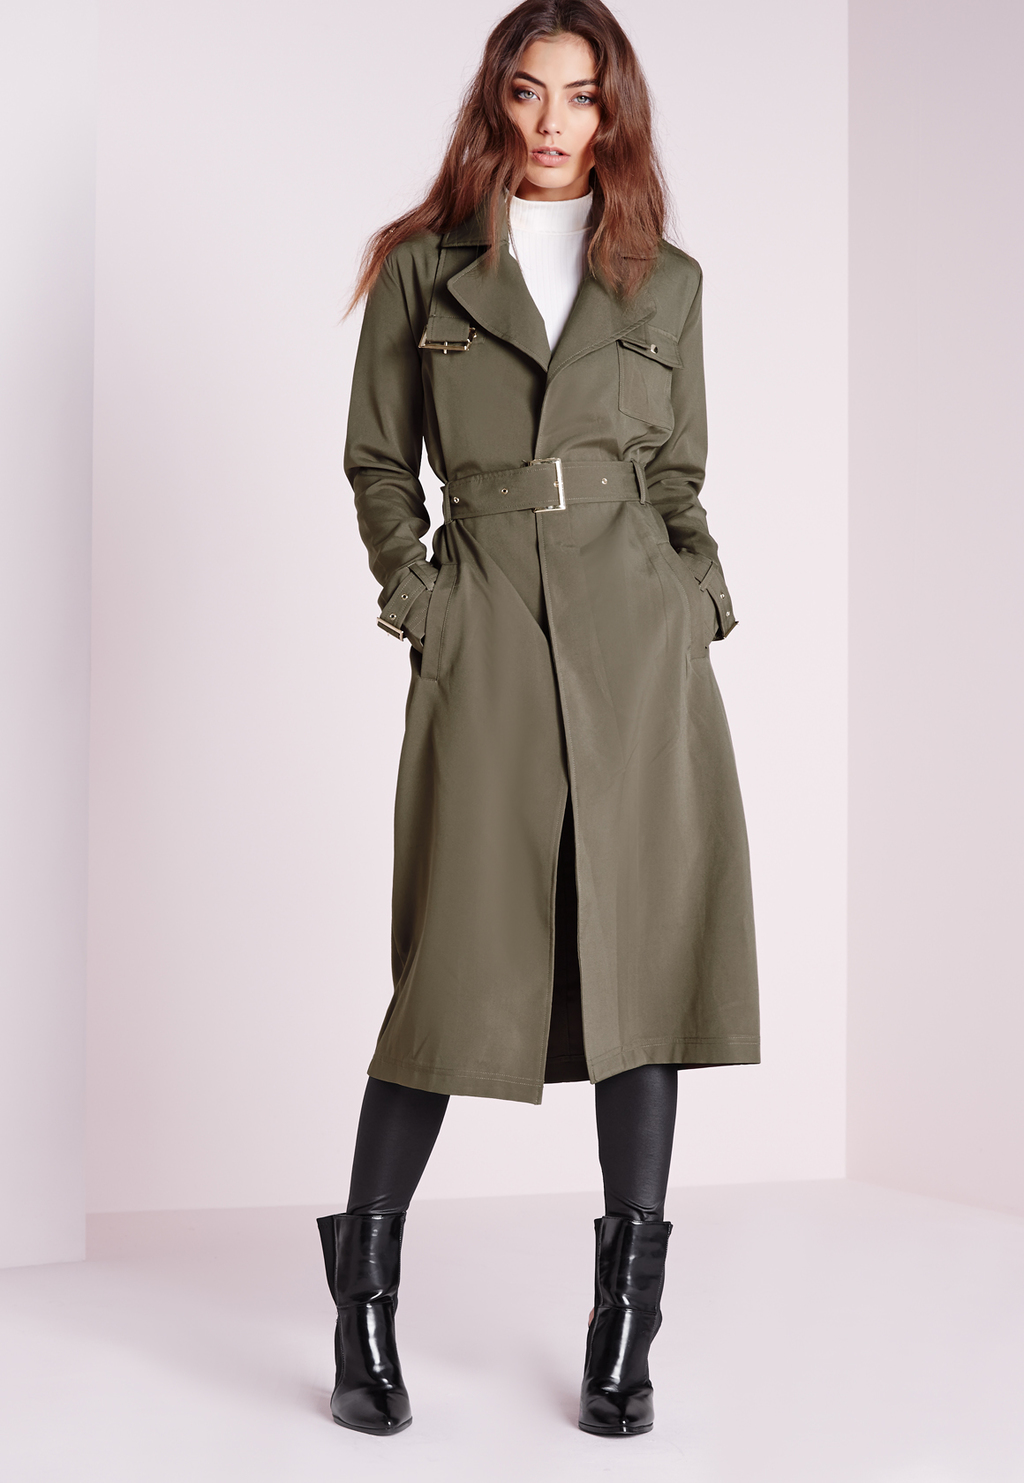 Military Trench Coat Khaki, Beige - pattern: plain; style: trench coat; fit: slim fit; collar: standard lapel/rever collar; length: calf length; predominant colour: khaki; occasions: casual; fibres: polyester/polyamide - stretch; waist detail: belted waist/tie at waist/drawstring; sleeve length: long sleeve; sleeve style: standard; collar break: medium; pattern type: fabric; texture group: other - light to midweight; season: s/s 2016; wardrobe: basic